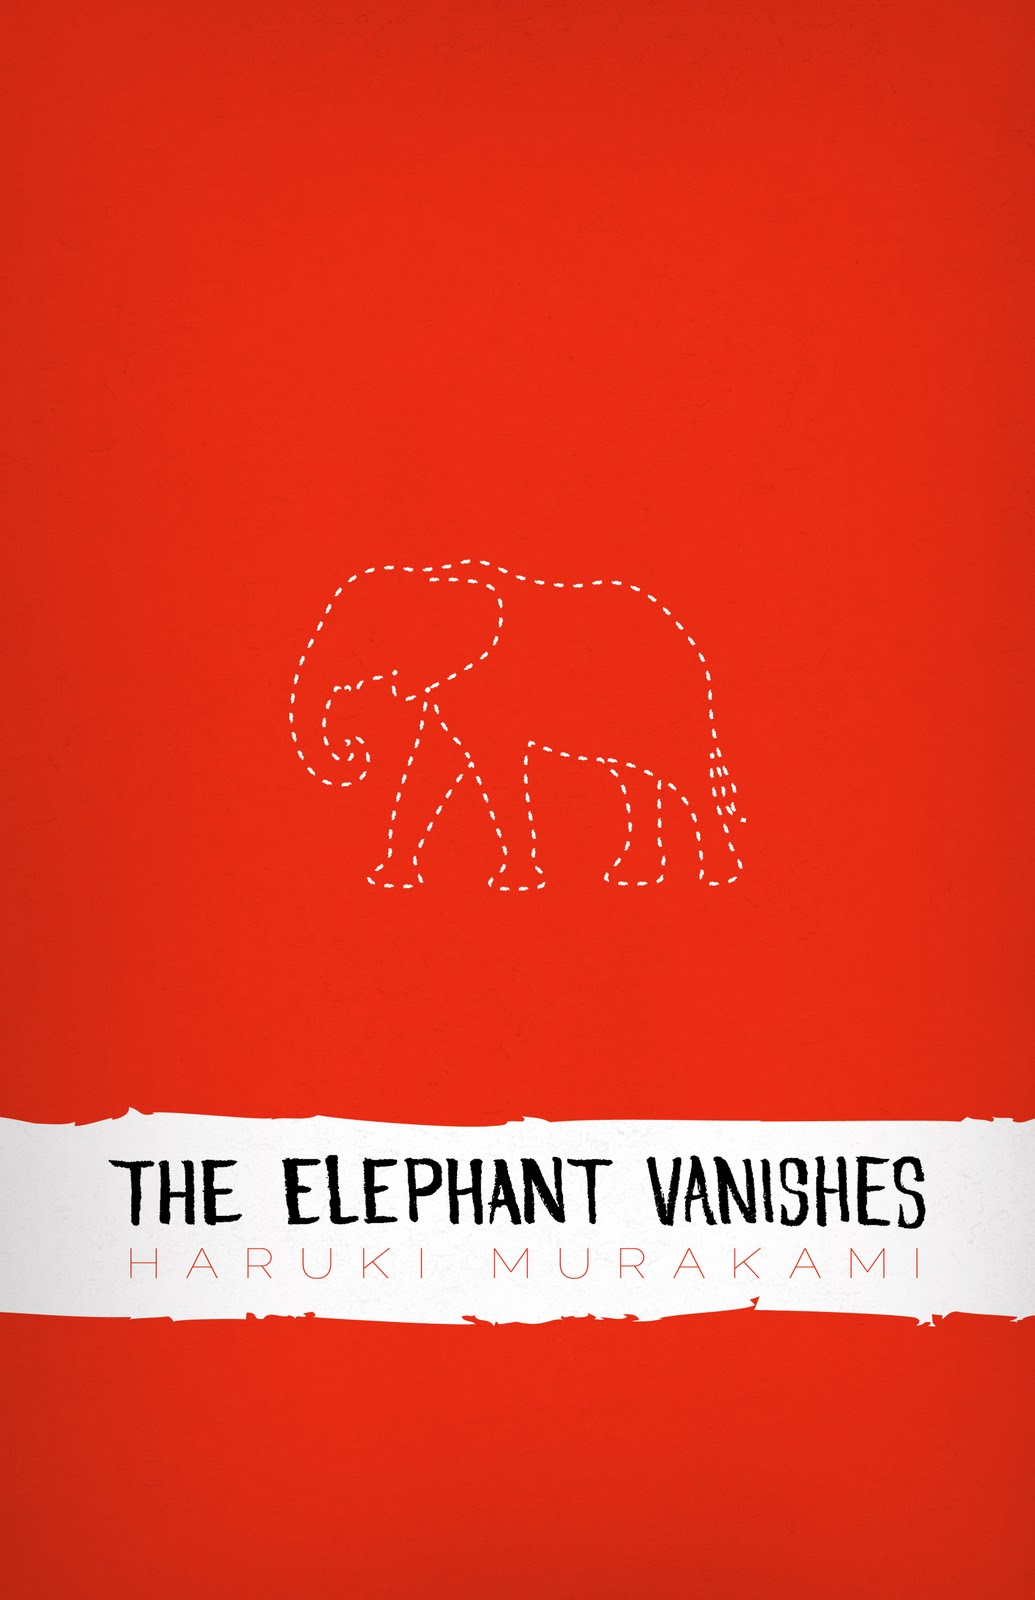 an elephant vanishes View homework help - murakami the elephant vanishes (1) from lit 2120 at university of central florida tue oxford book of jnpan es e s hort.